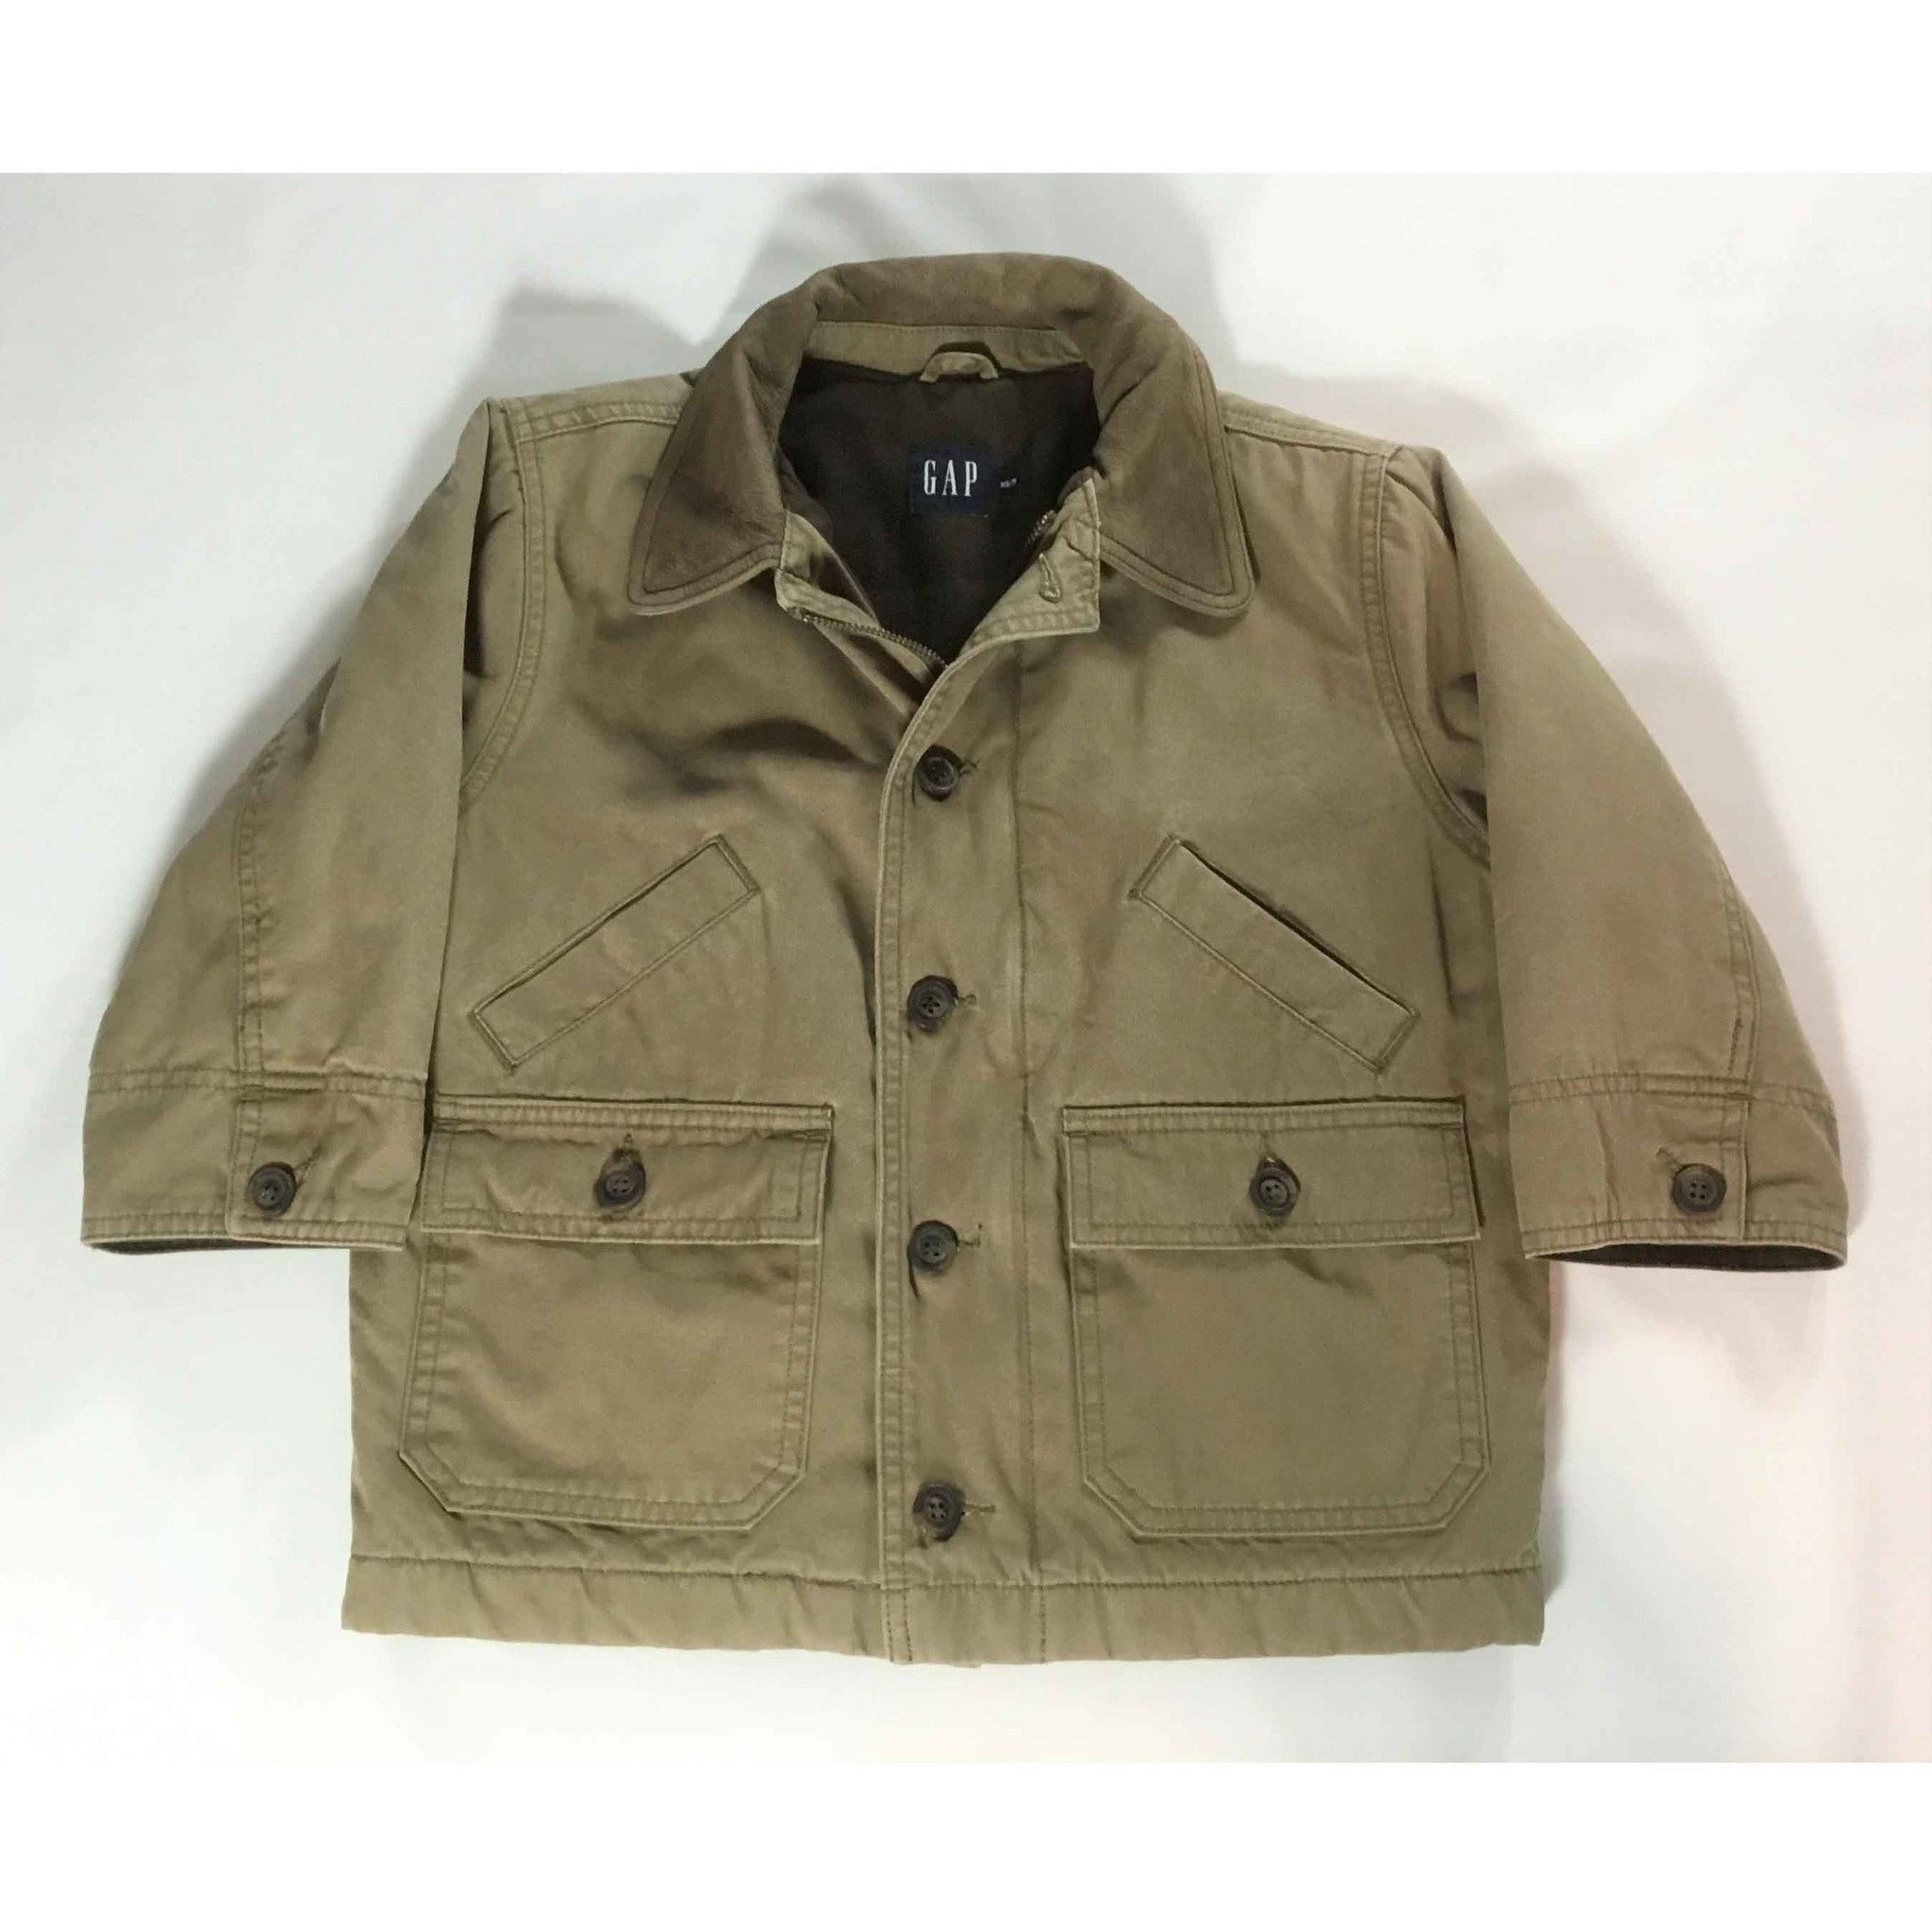 Gap rugged canvas jacket